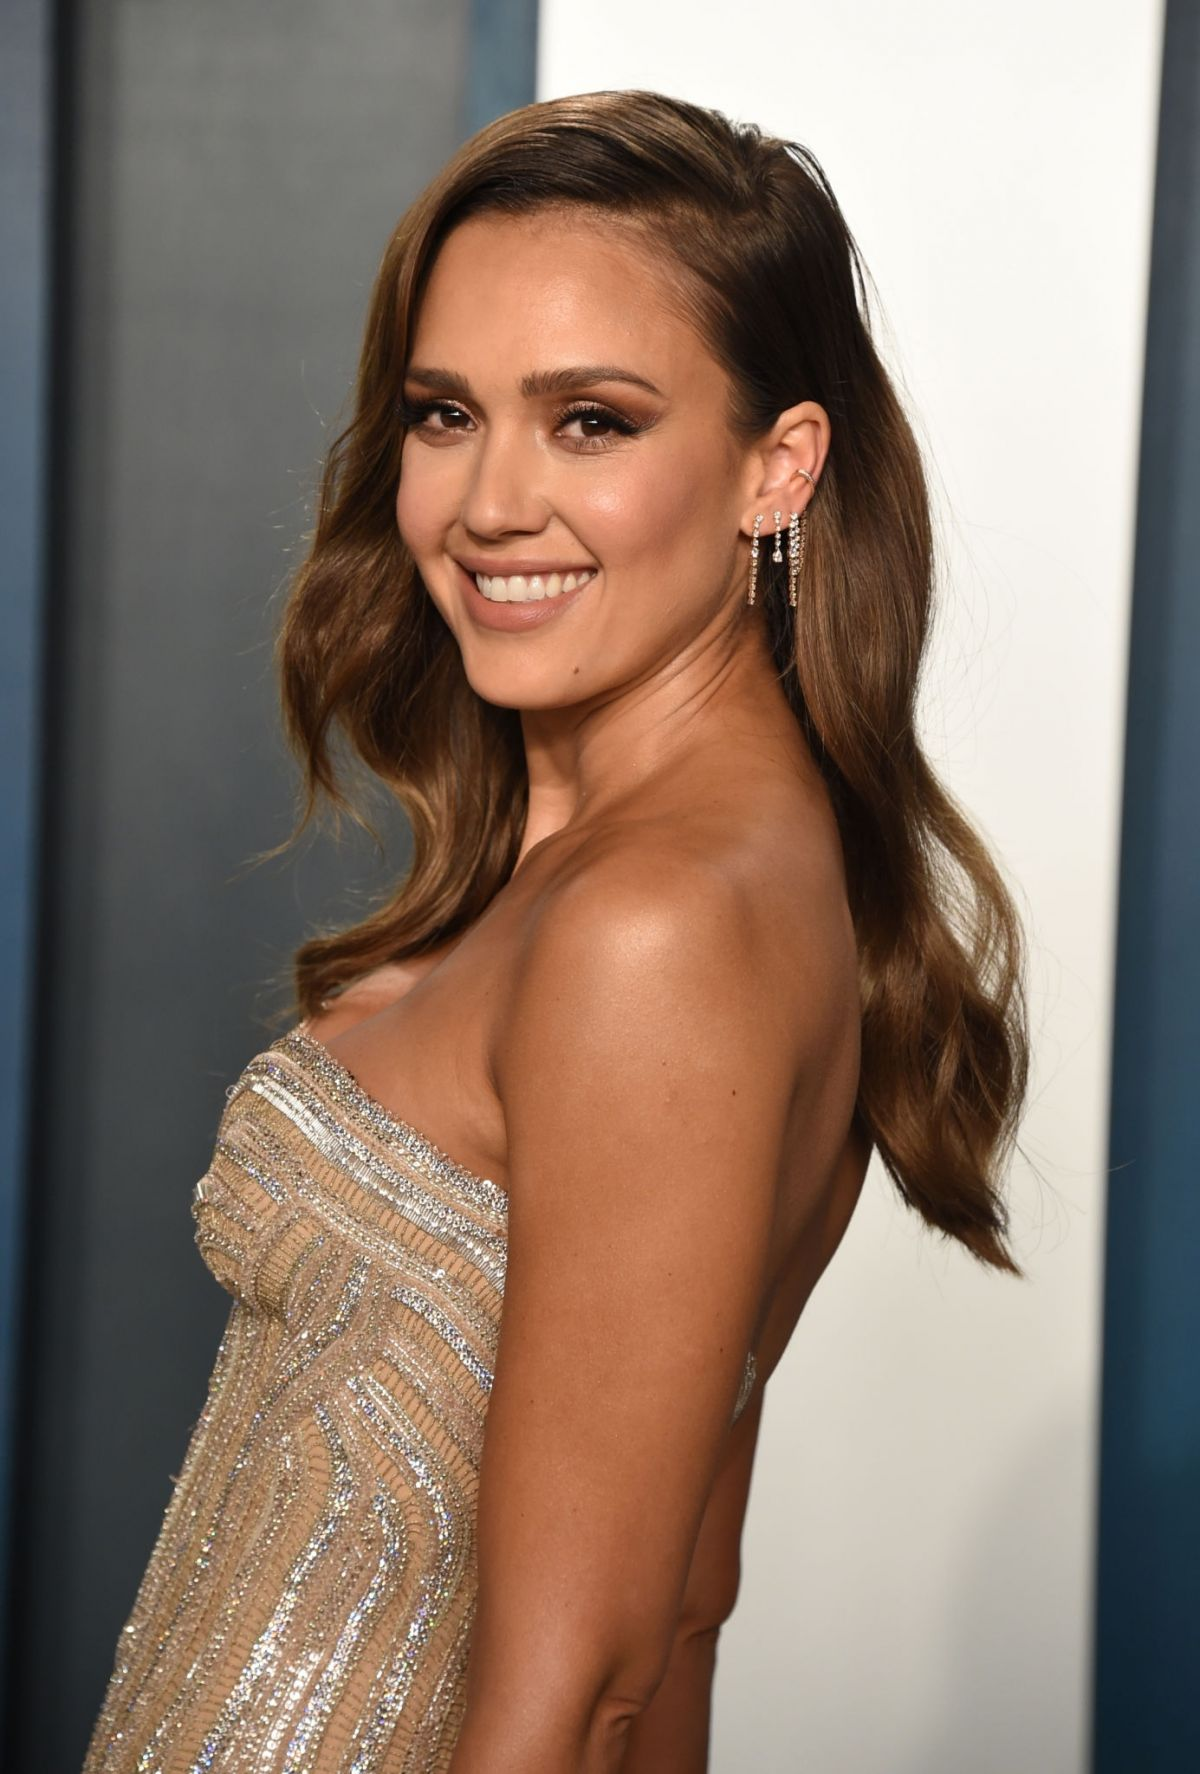 JESSICA ALBA at 2020 Vanity Fair Oscar Party in Beverly Hills 02\/09\/2020 – HawtCelebs